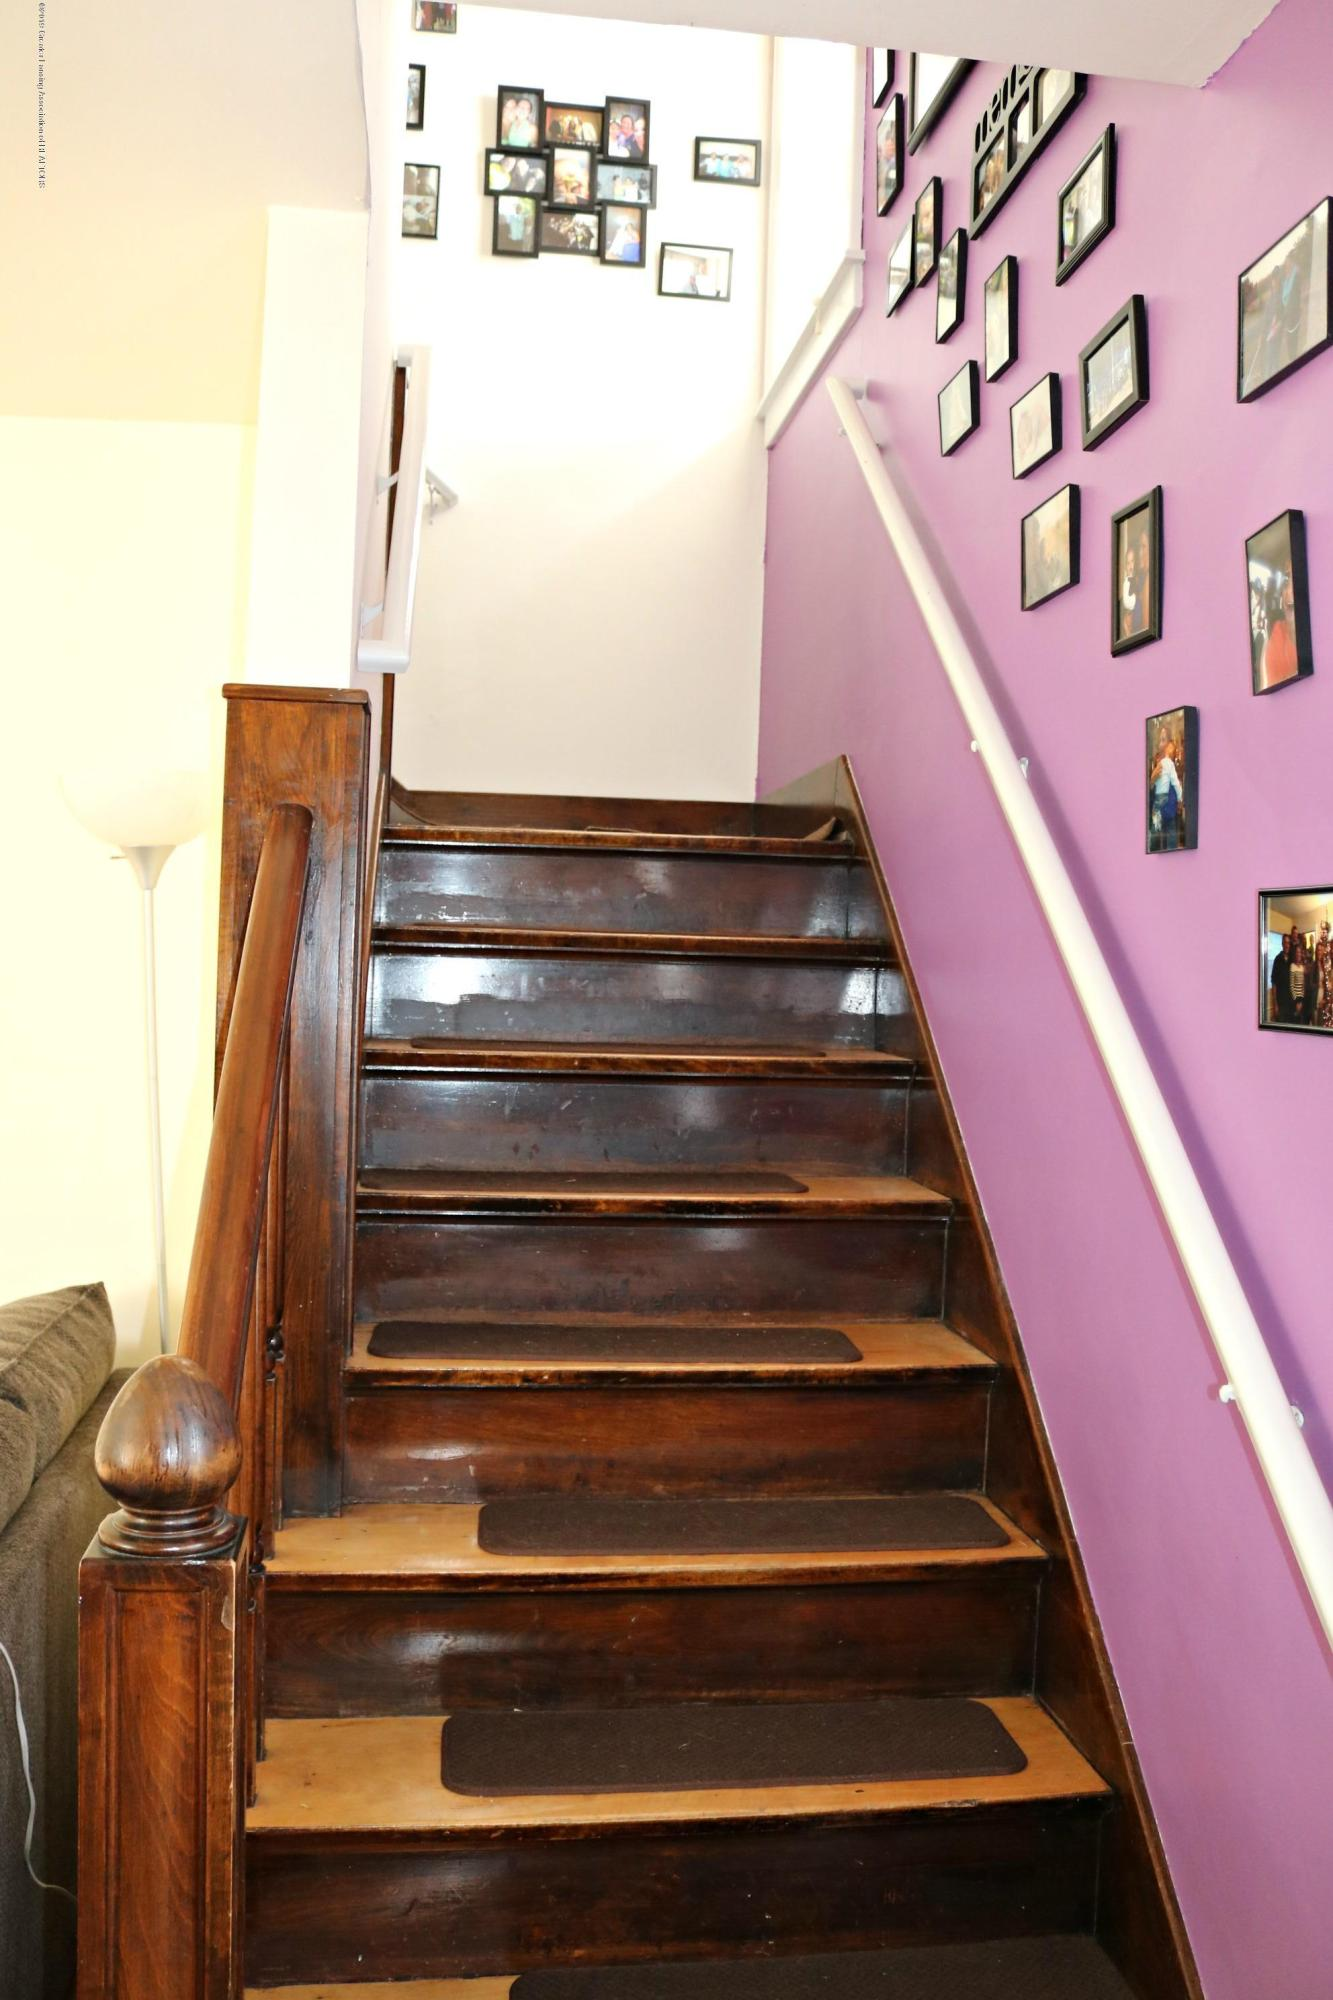 703 N Magnolia Ave - Stairs - 9